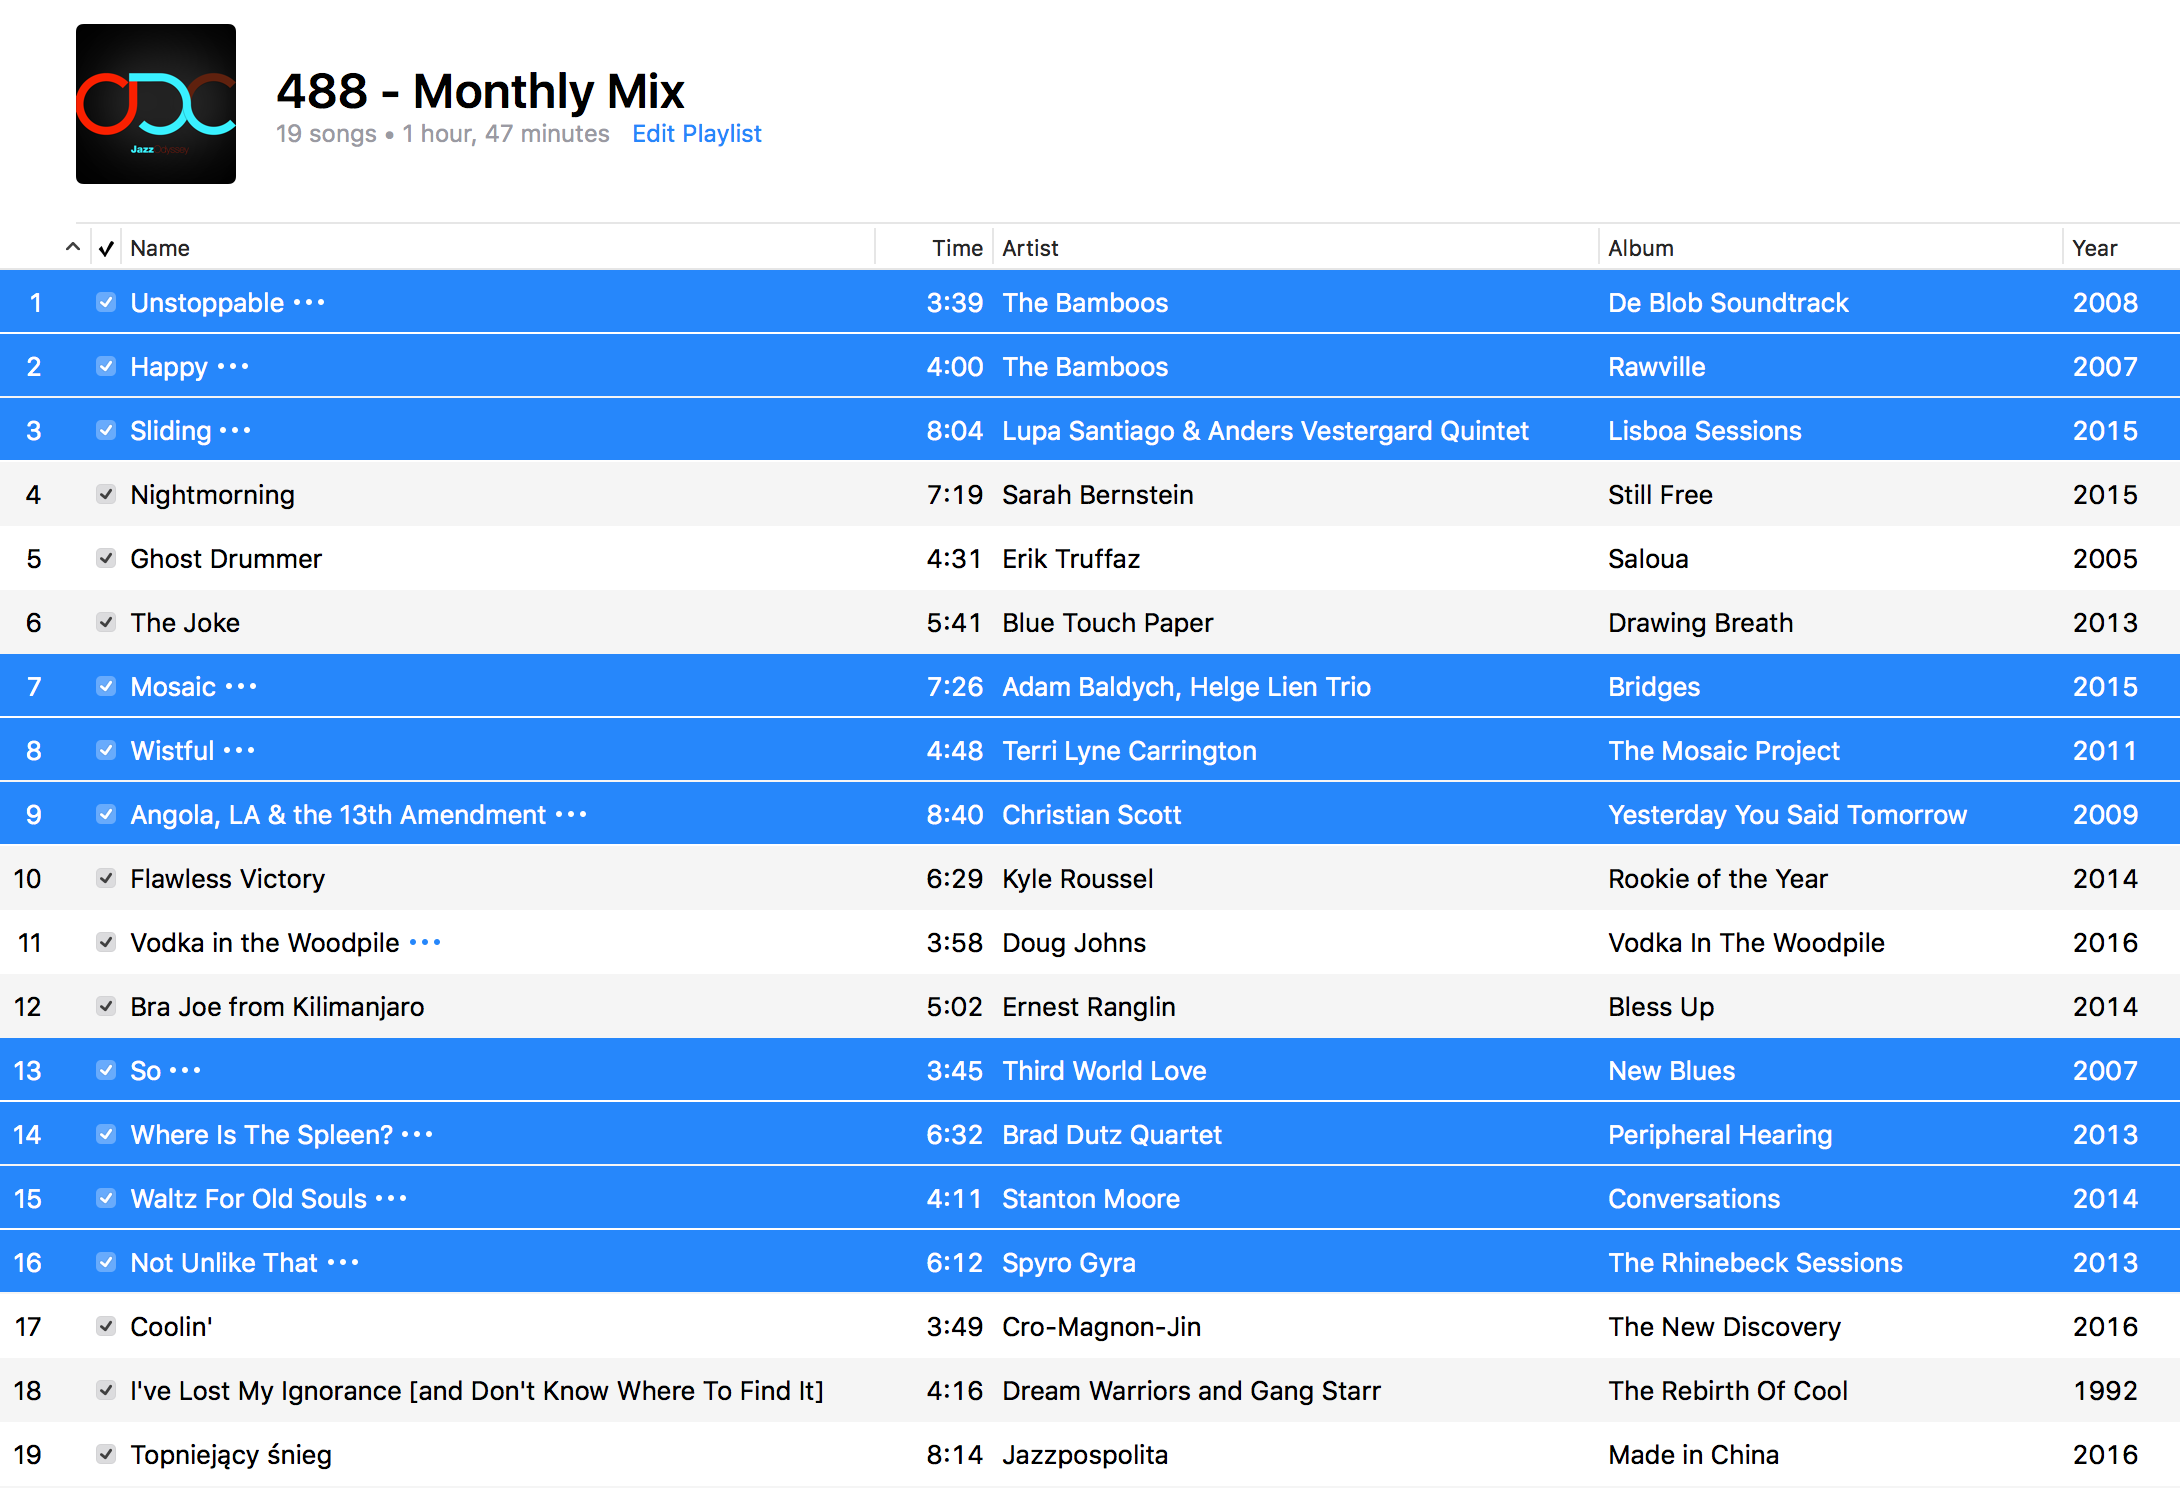 Jazz ODC #488 - The Monthly Mix - Playlist